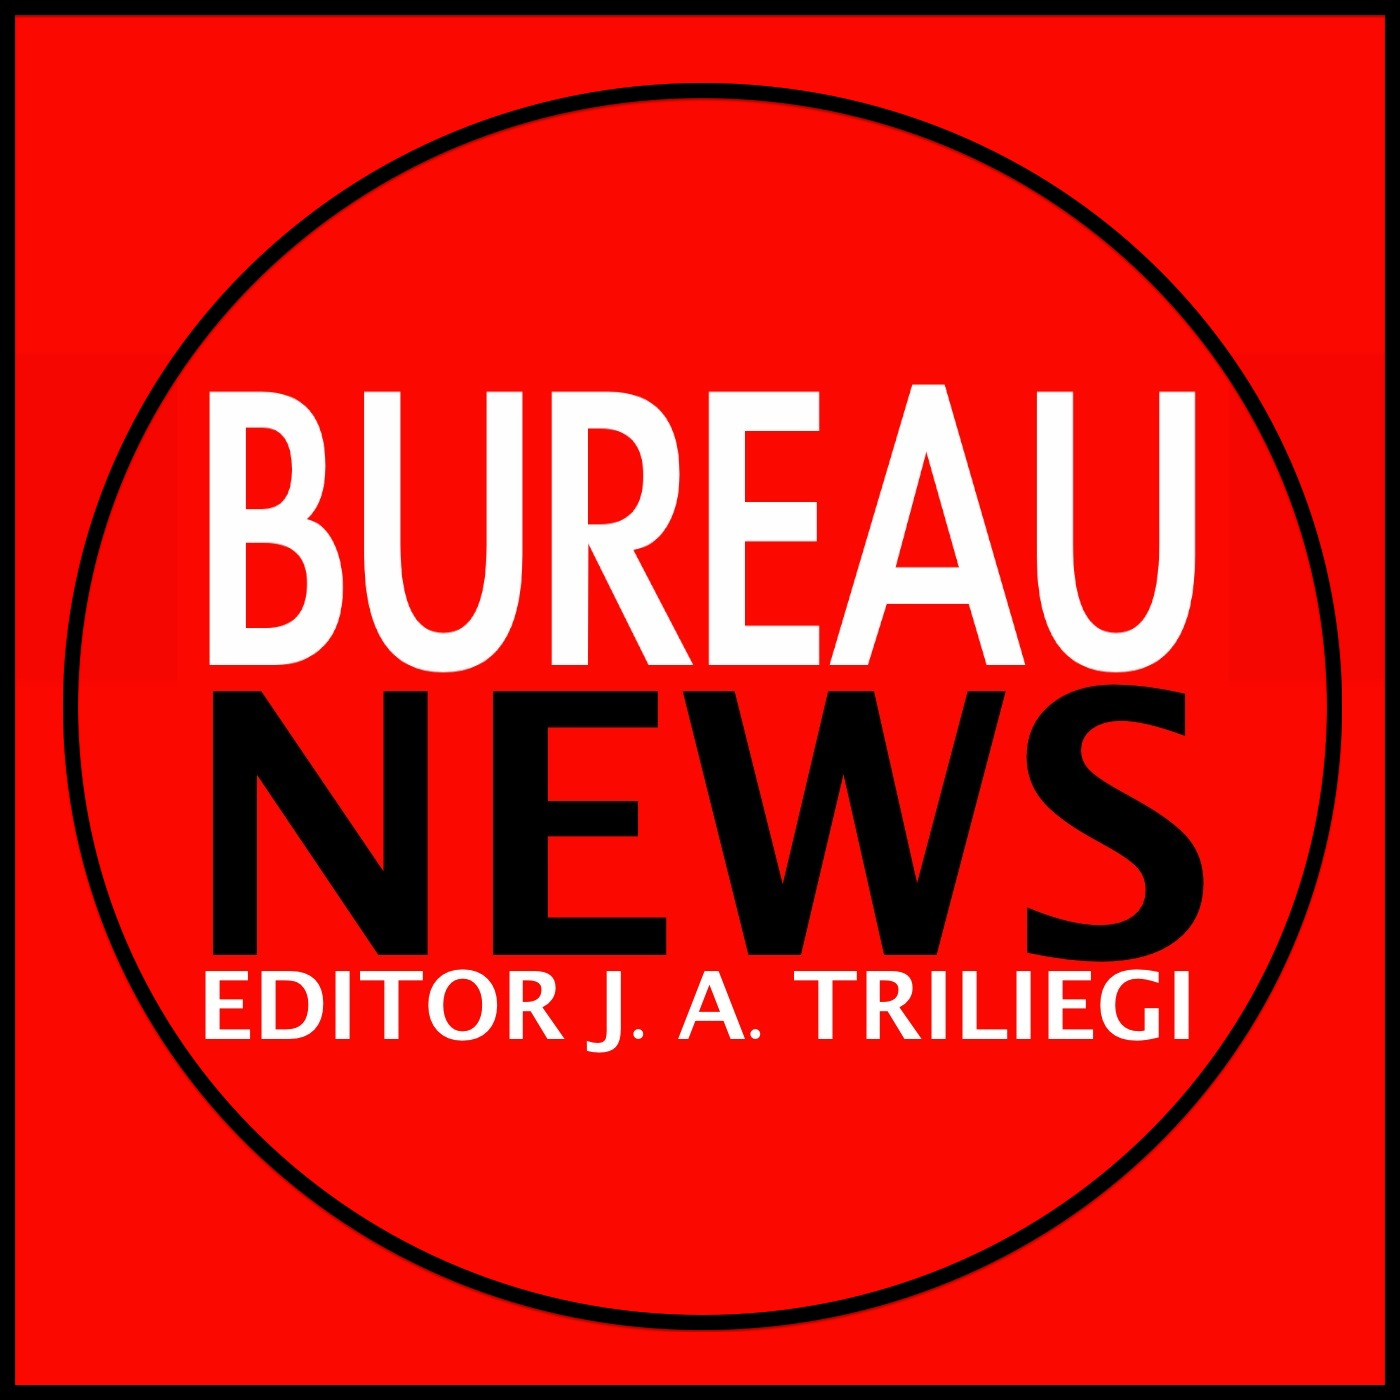 WELCOME :  BUREAU NEWS